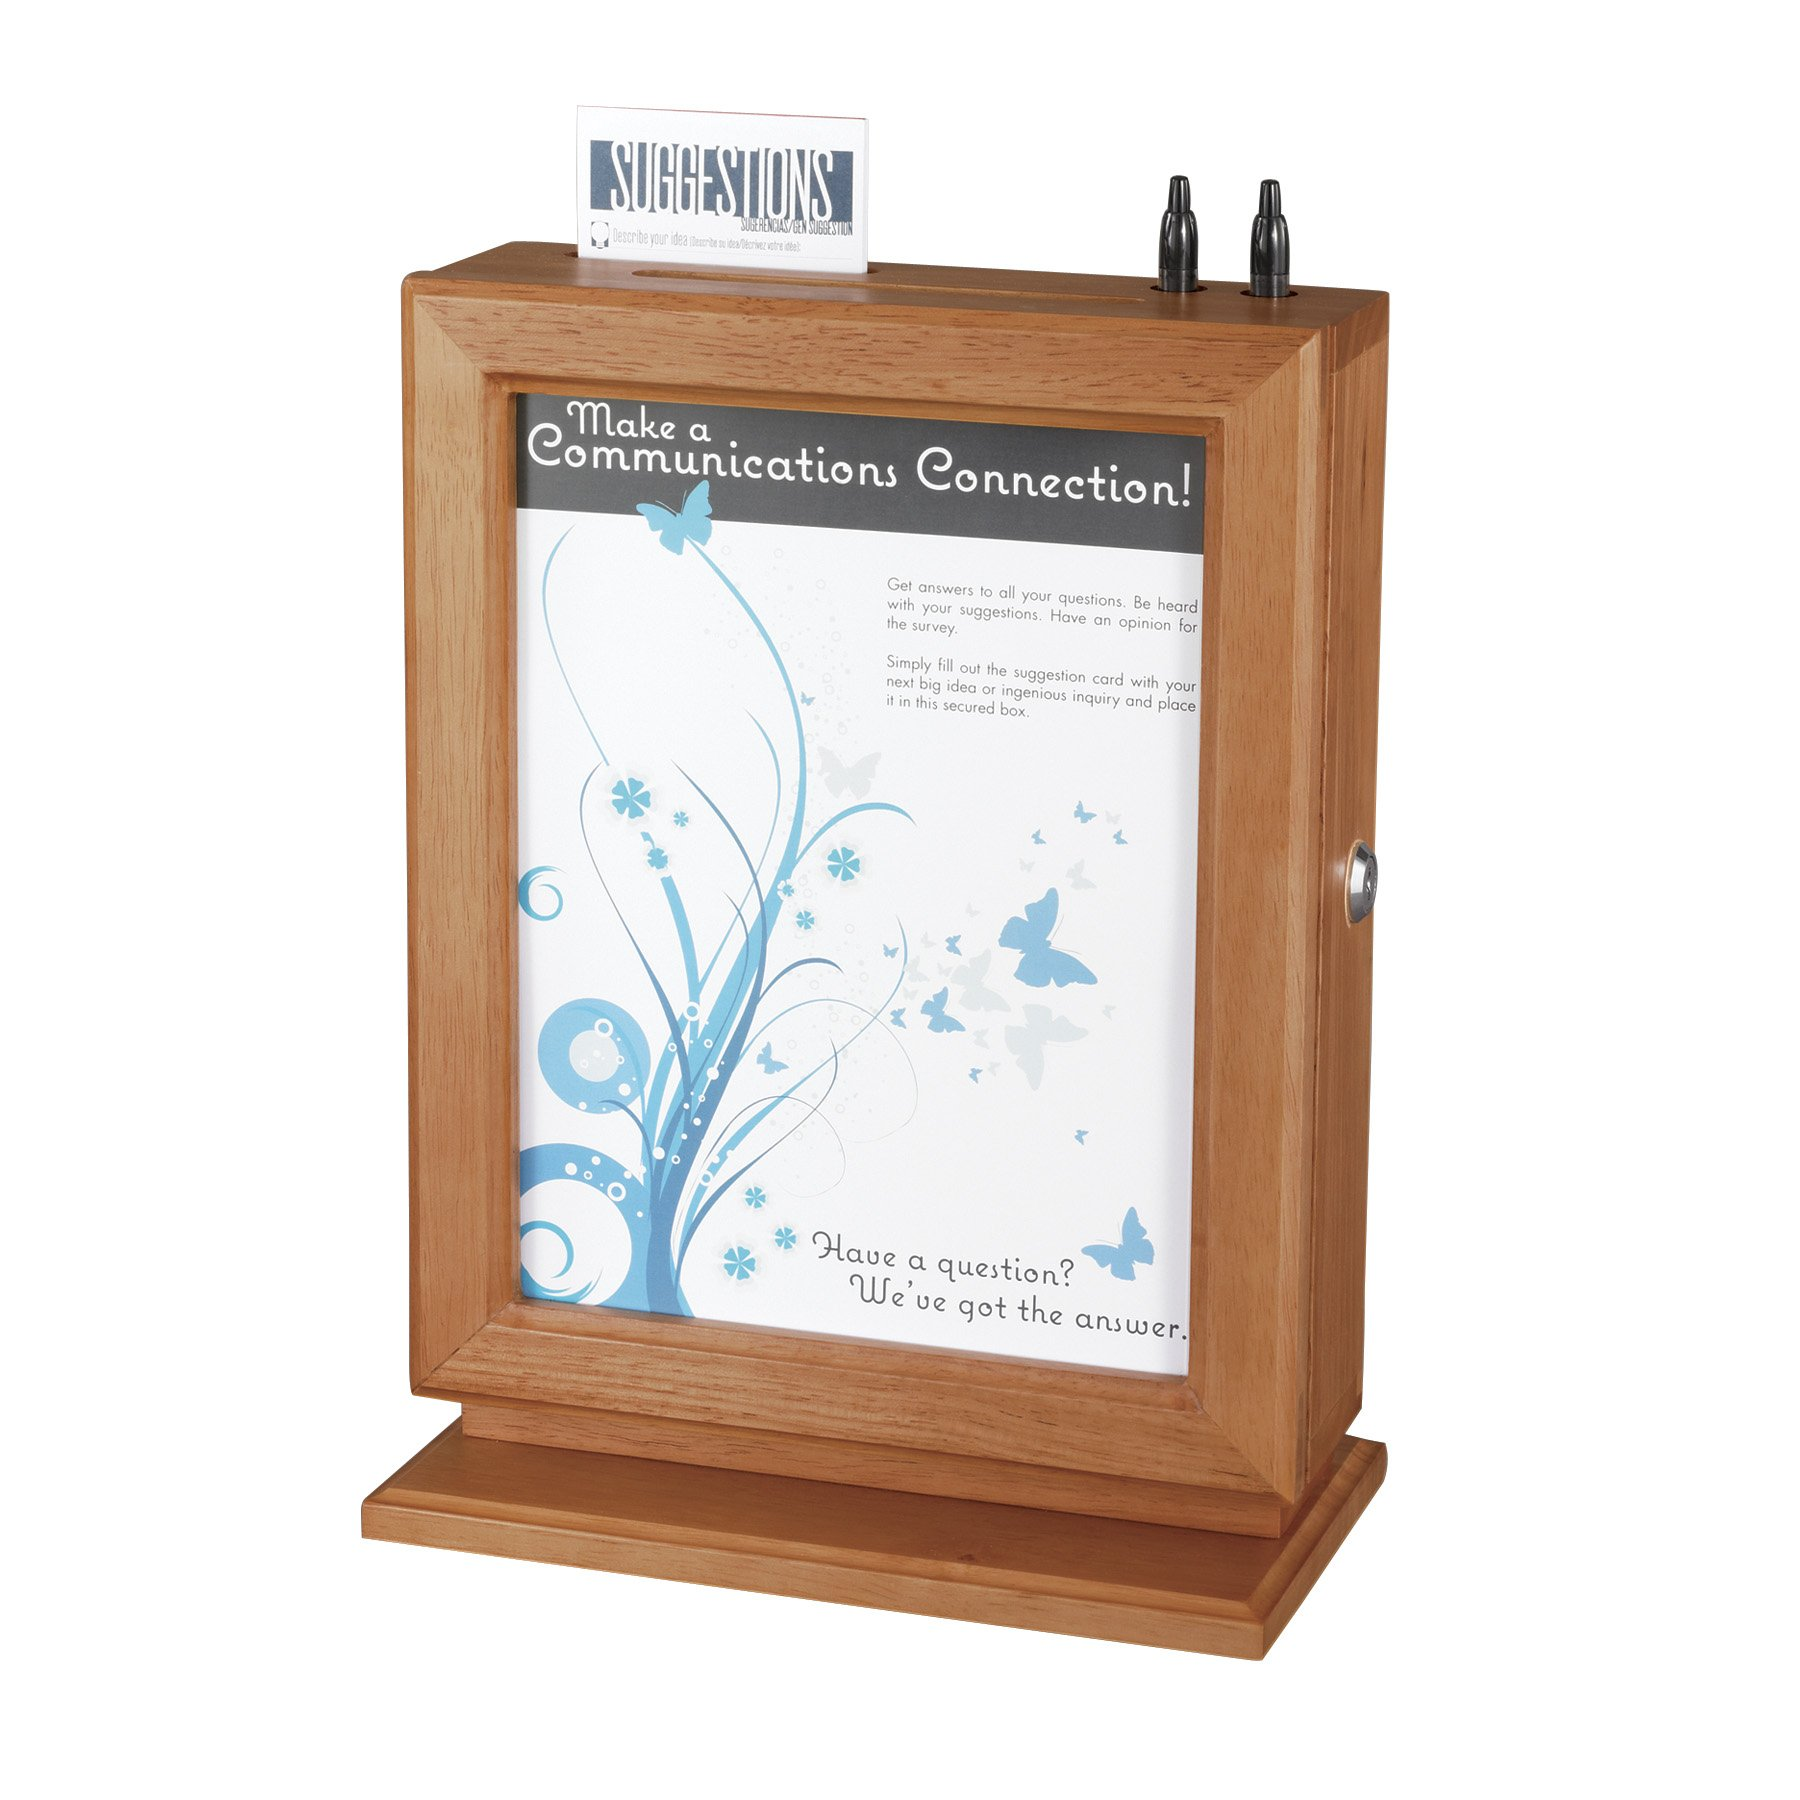 Safco Products 4236CY Customizable Wood Suggestion Box, Cherry by Safco Products